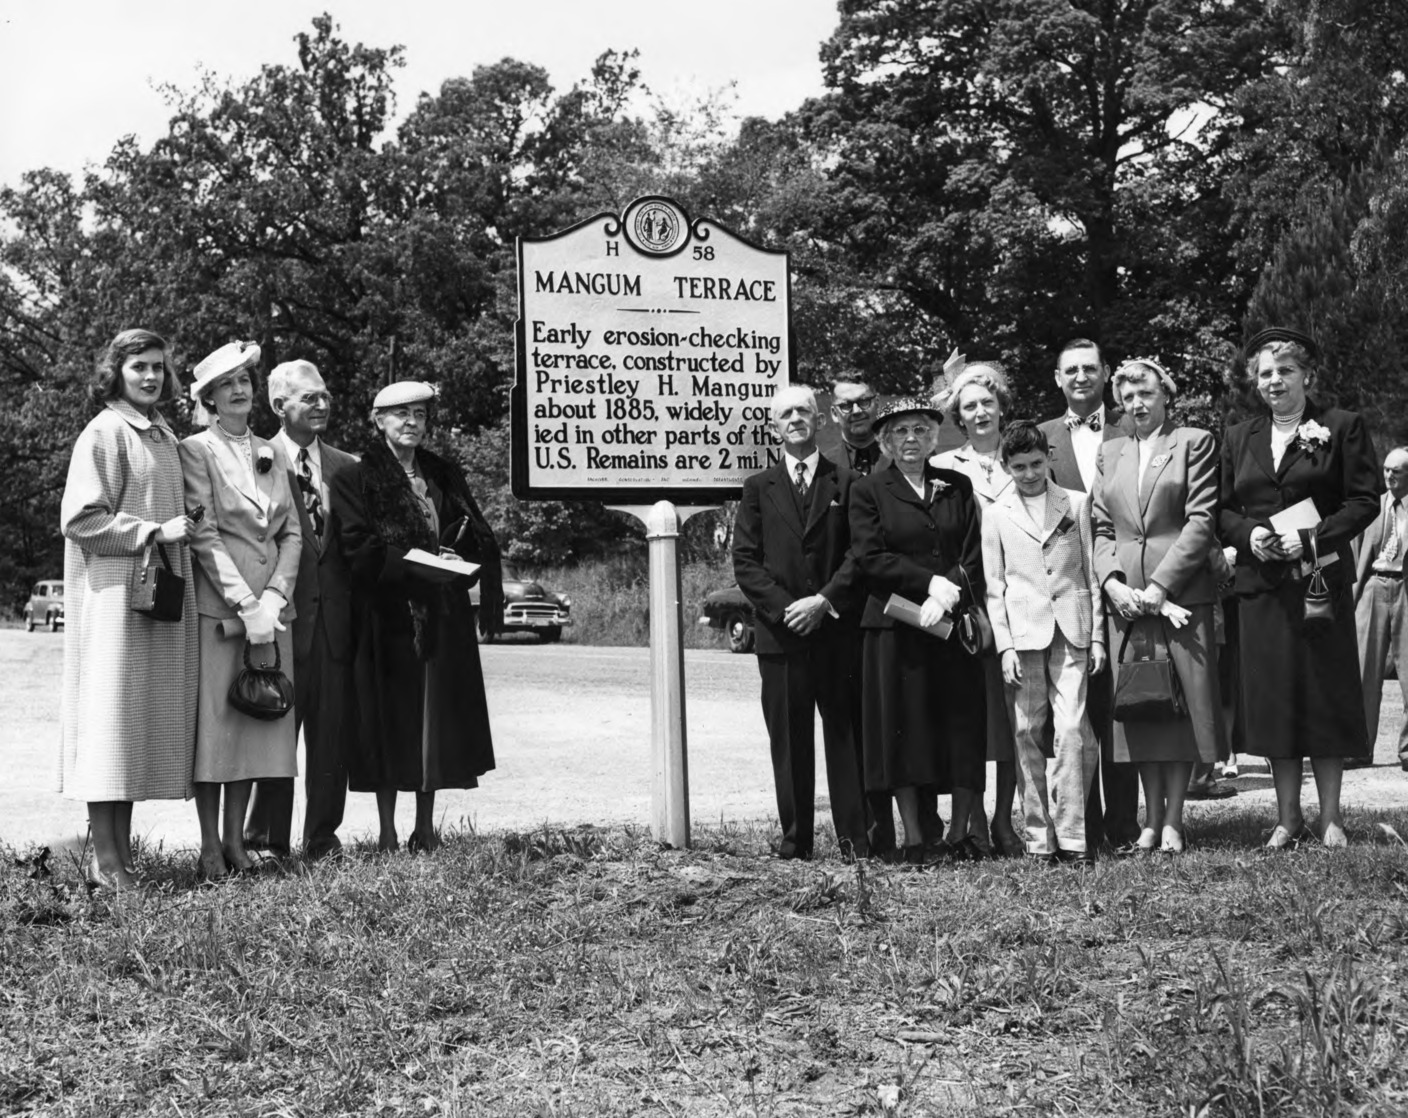 Mangum family around Mangum Terrace Historical Marker